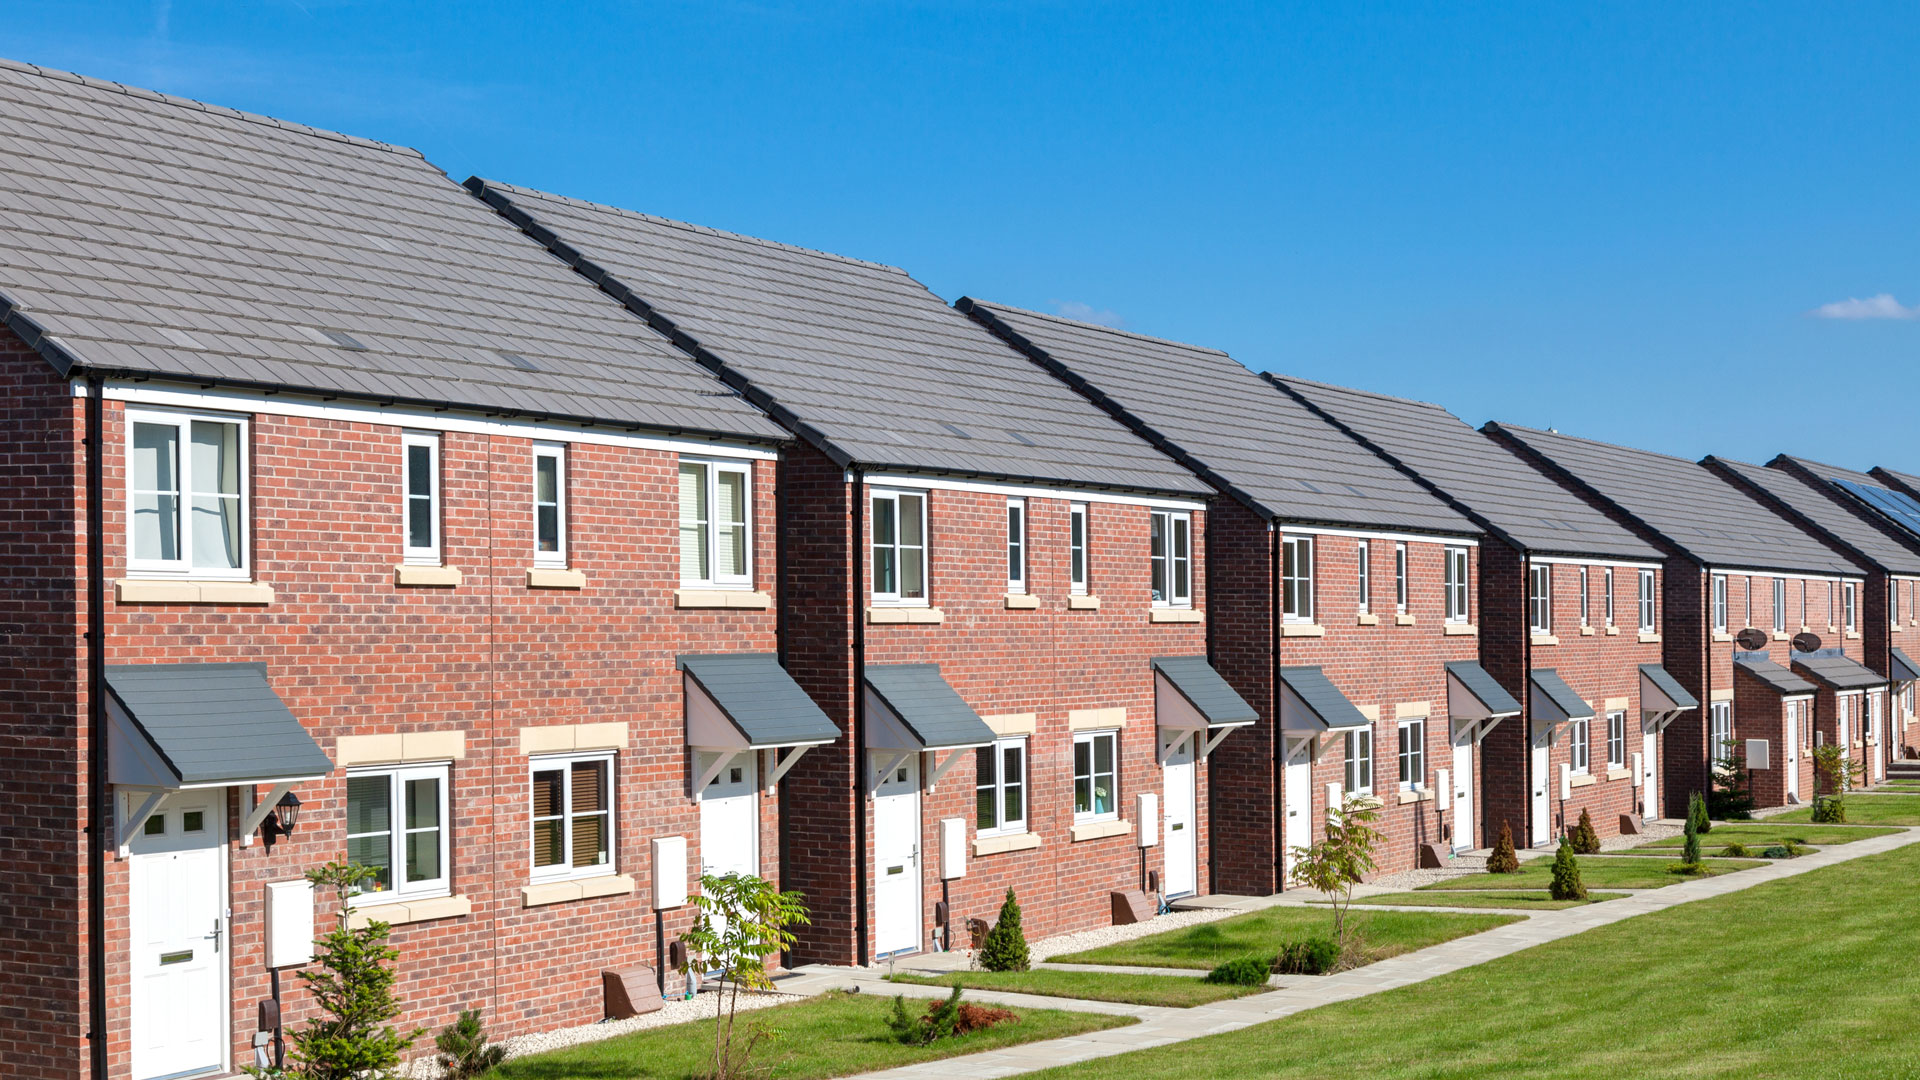 UK Housing Minister launches Home of 2030 design ...